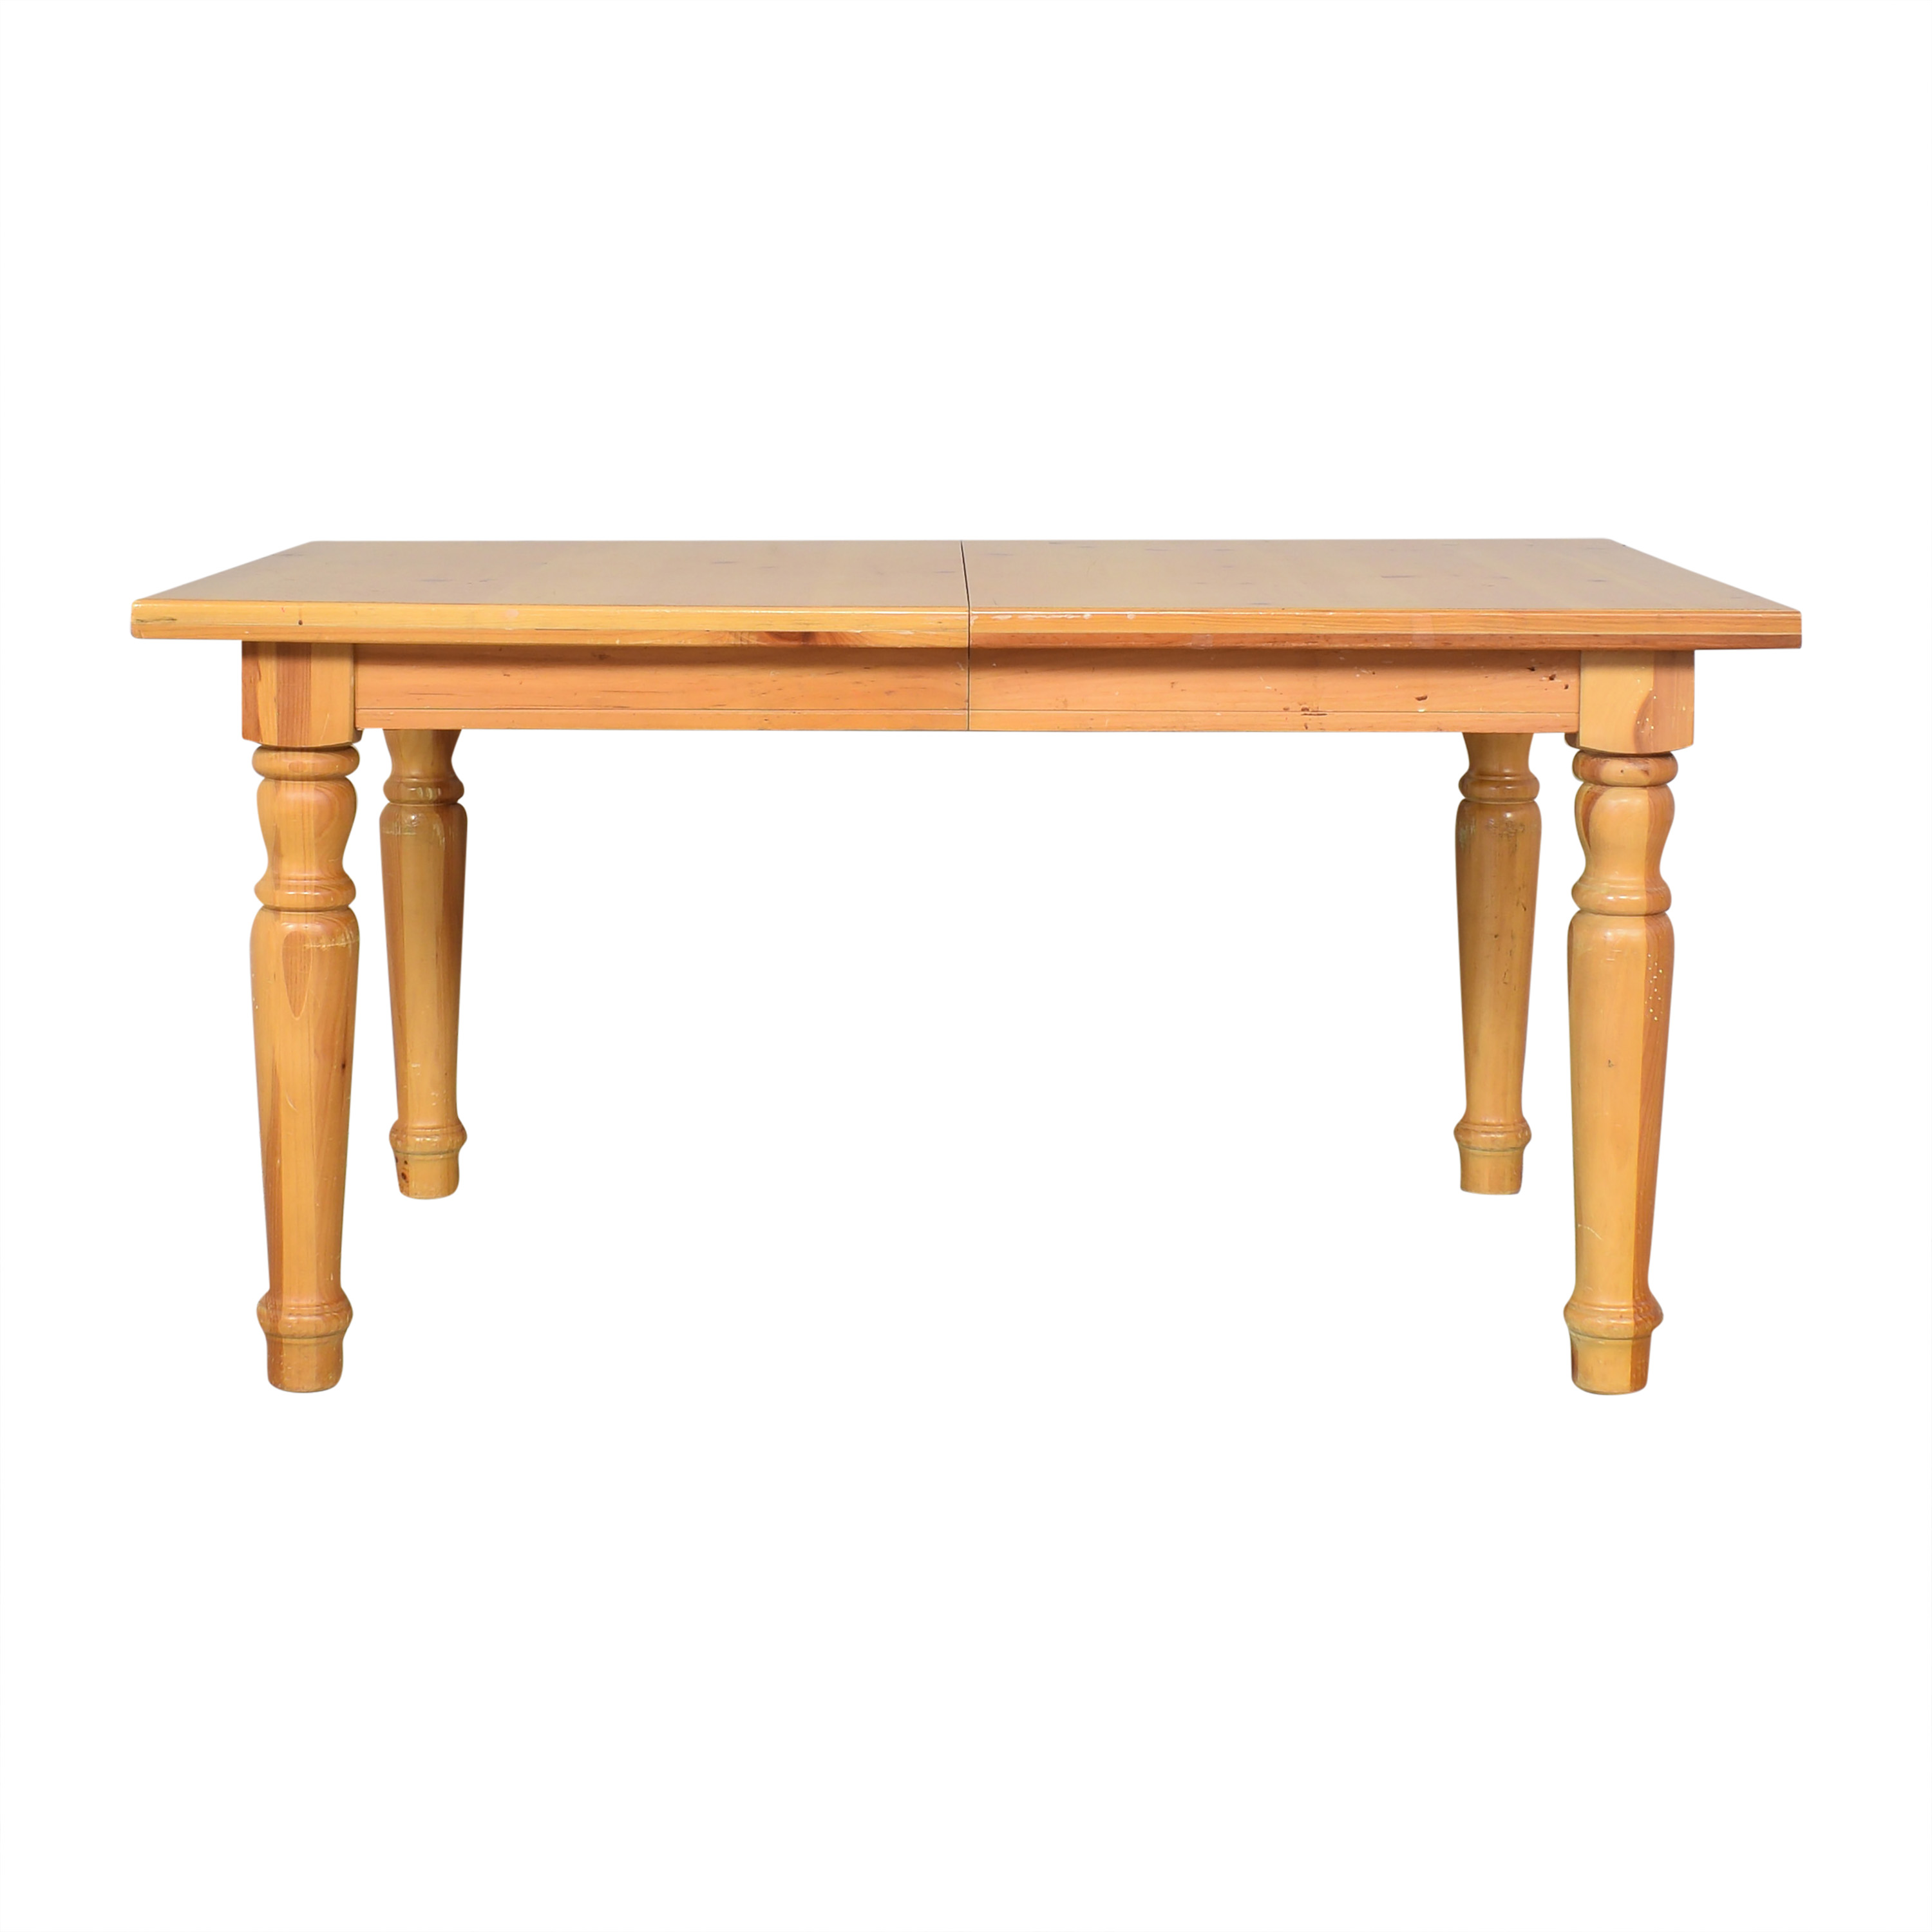 Broyhill Furniture Broyhill Extendable Dining Table discount